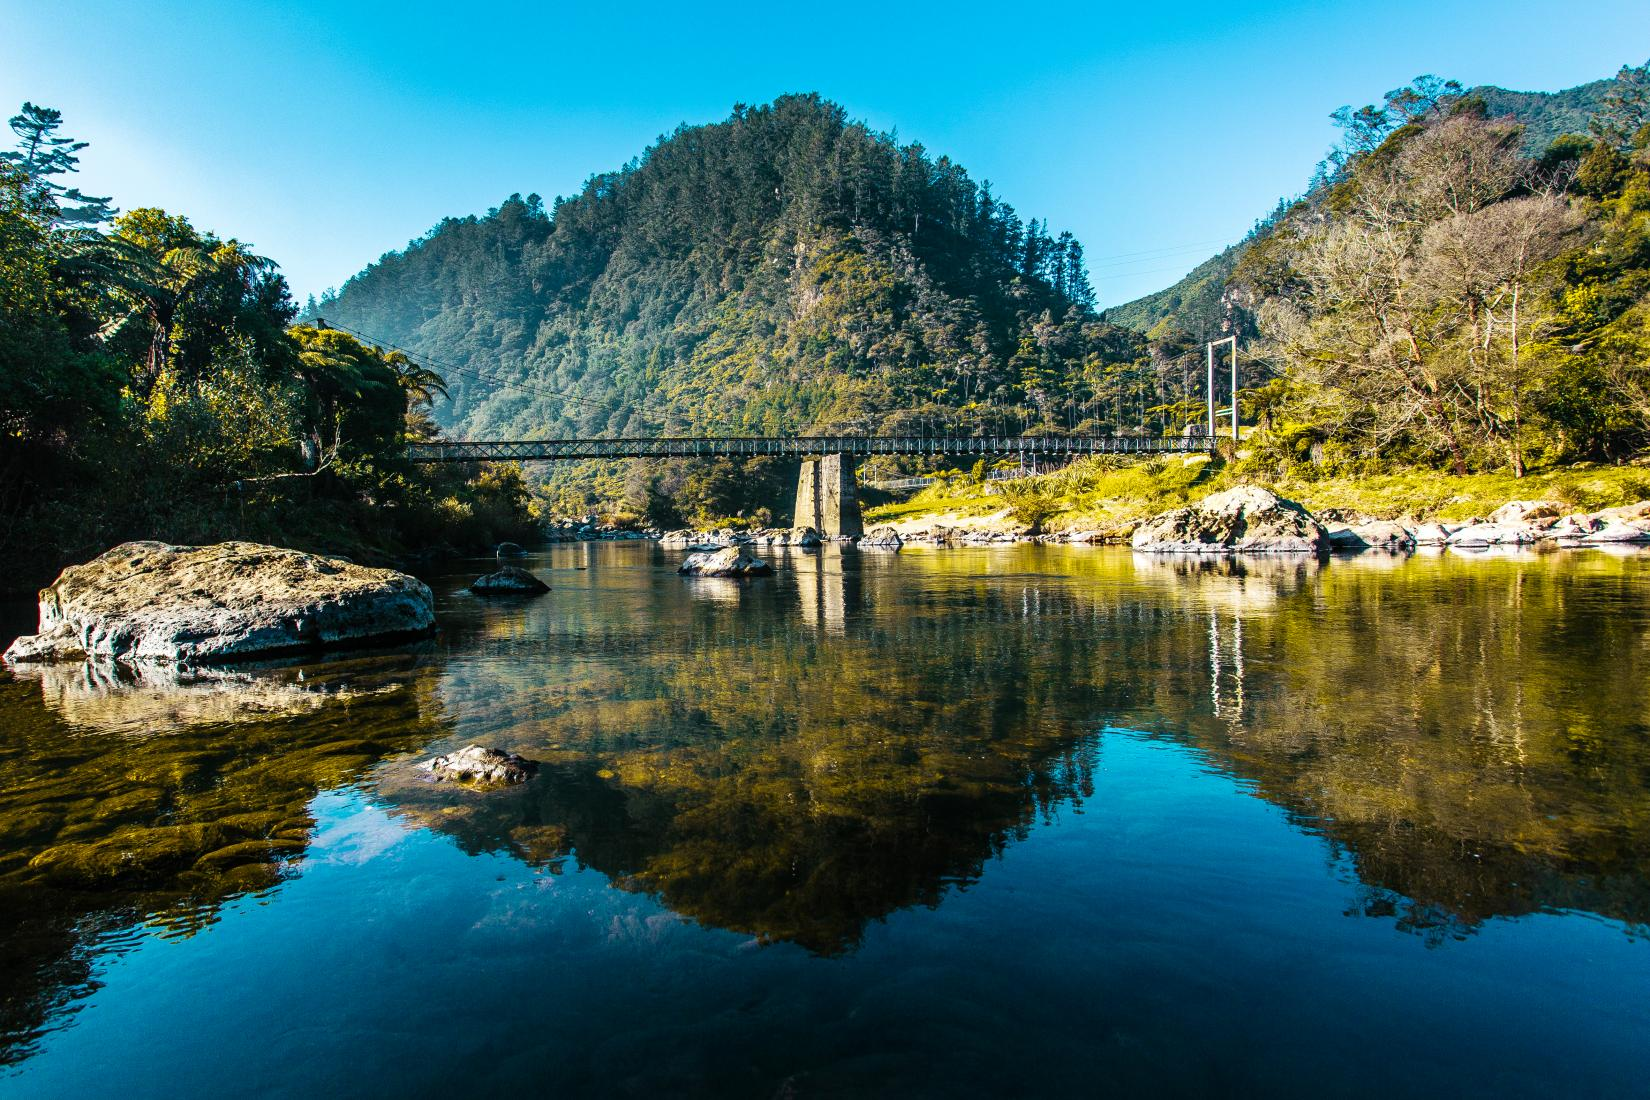 Karangahake-Gorge-reflection2.jpg